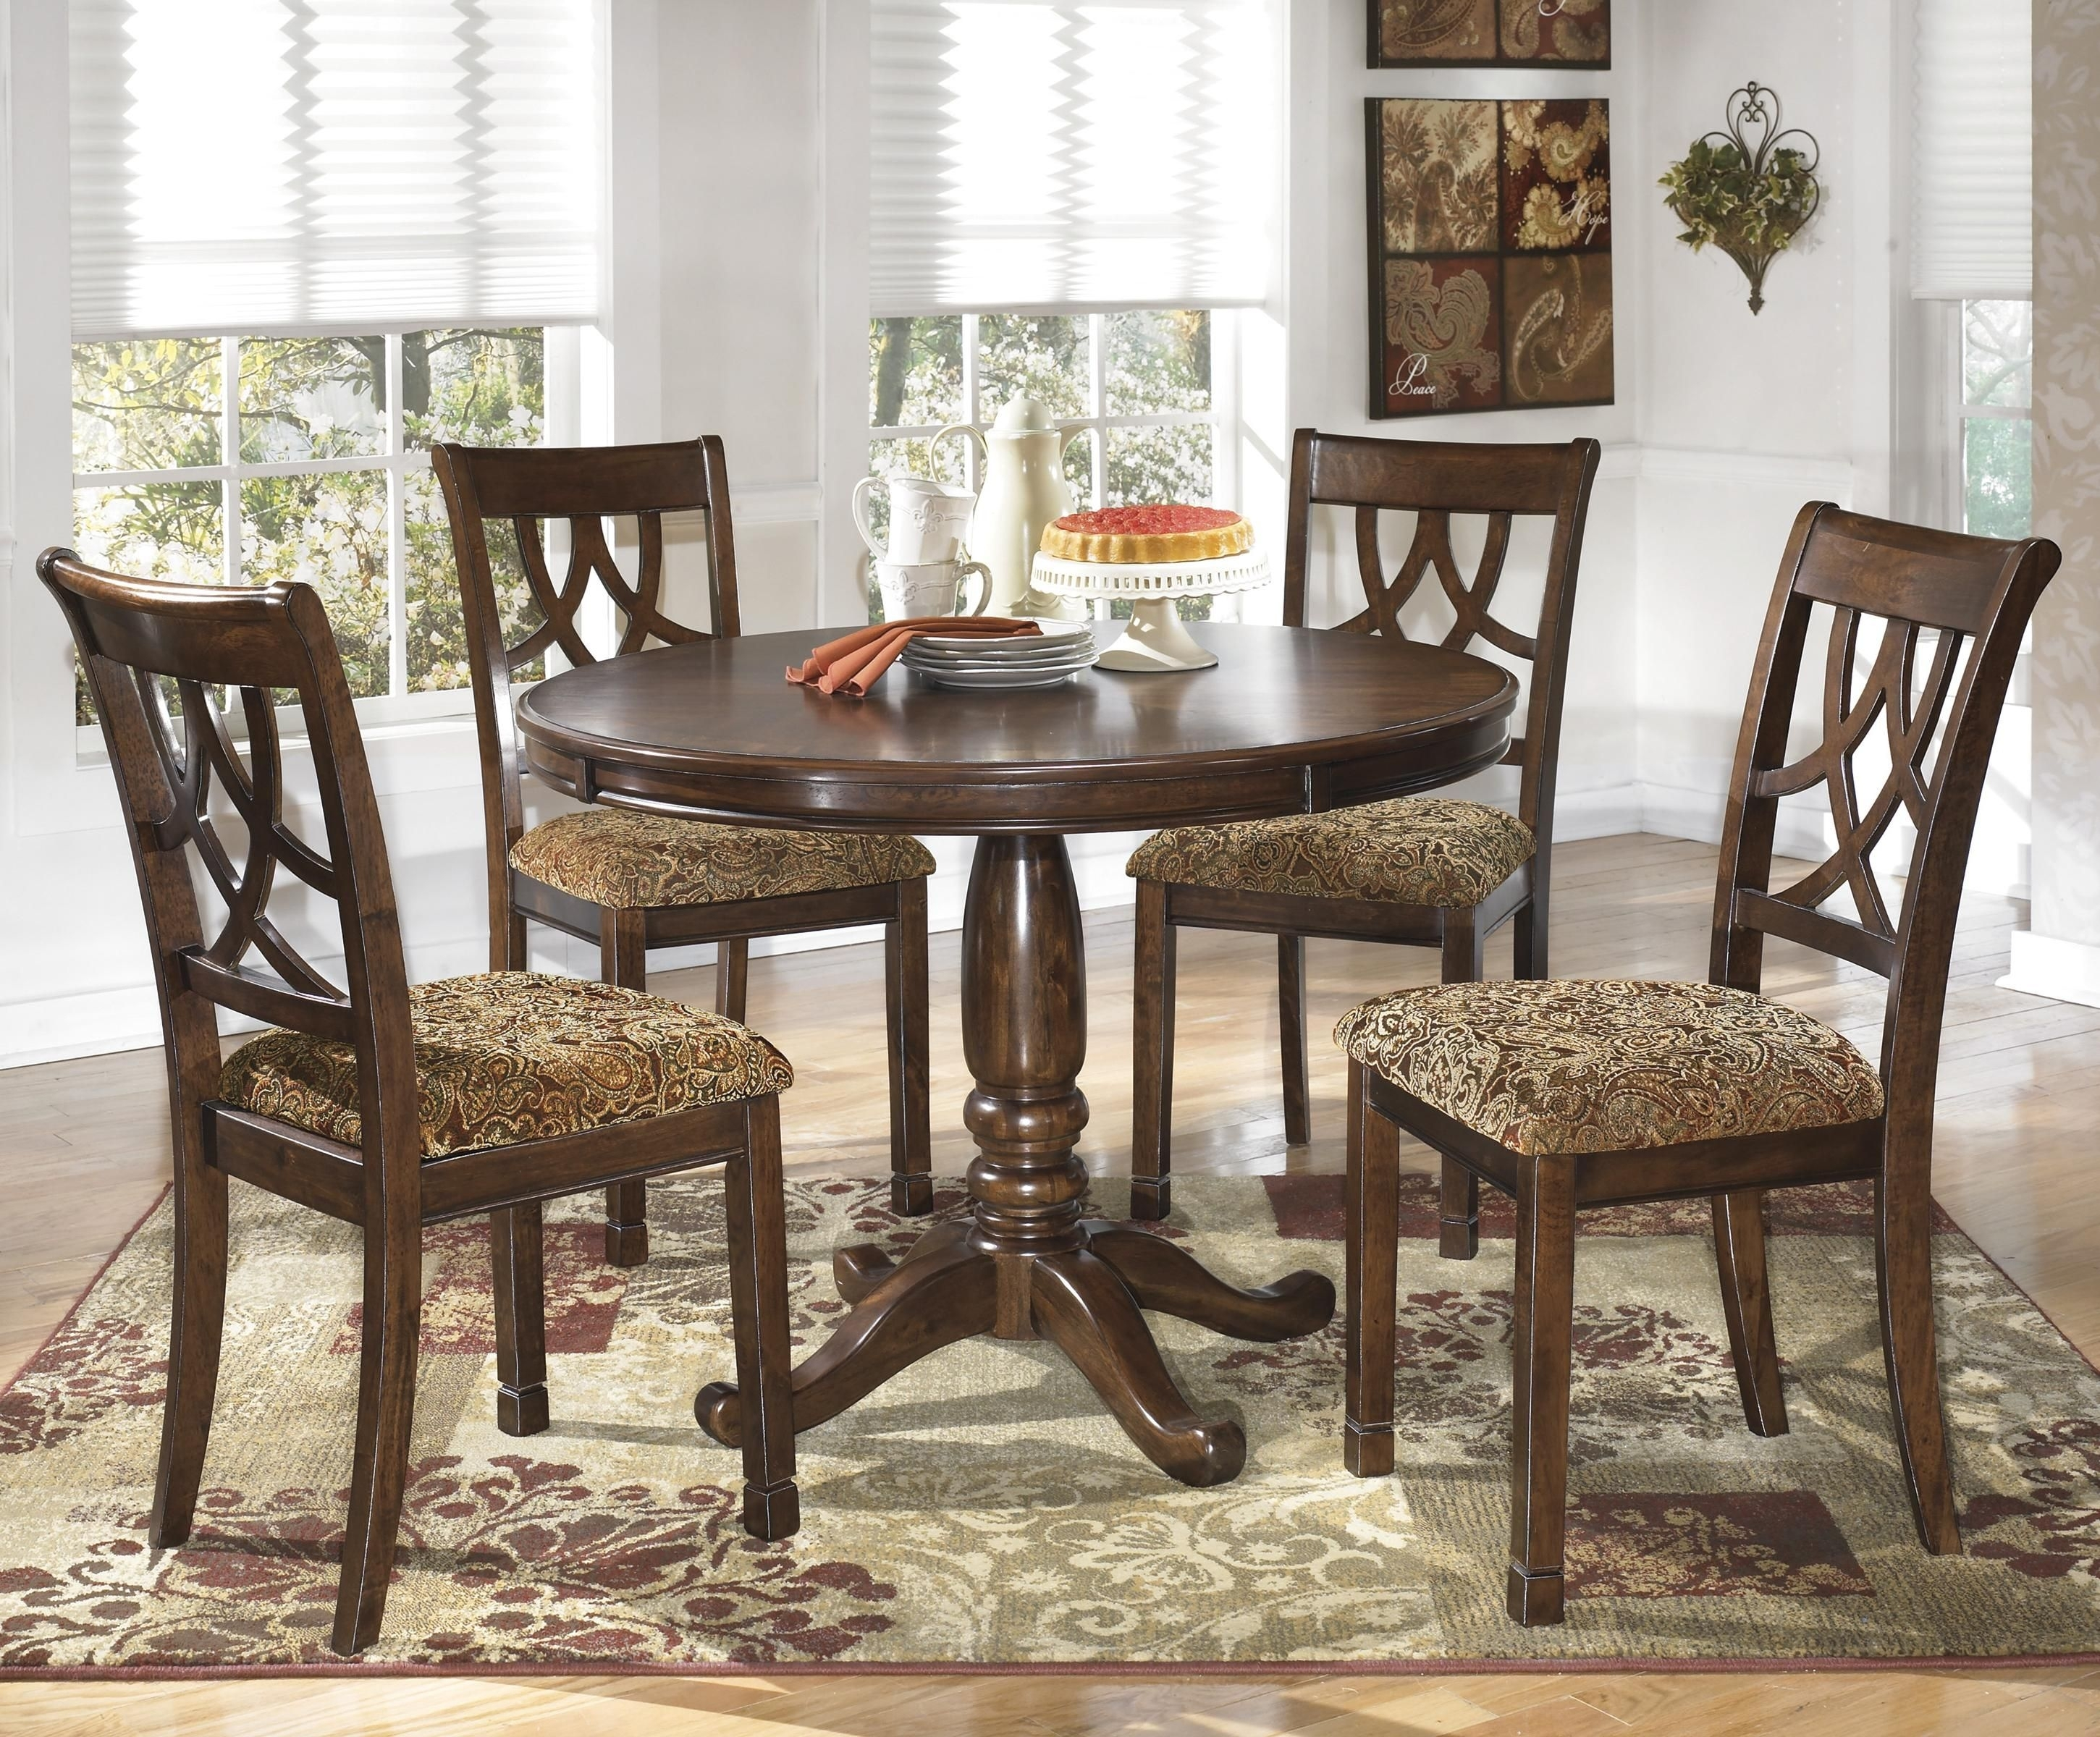 Leahlyn 5 Piece Round Dining Table Setsignature Designashley Inside 2018 Craftsman 9 Piece Extension Dining Sets With Uph Side Chairs (Image 12 of 20)